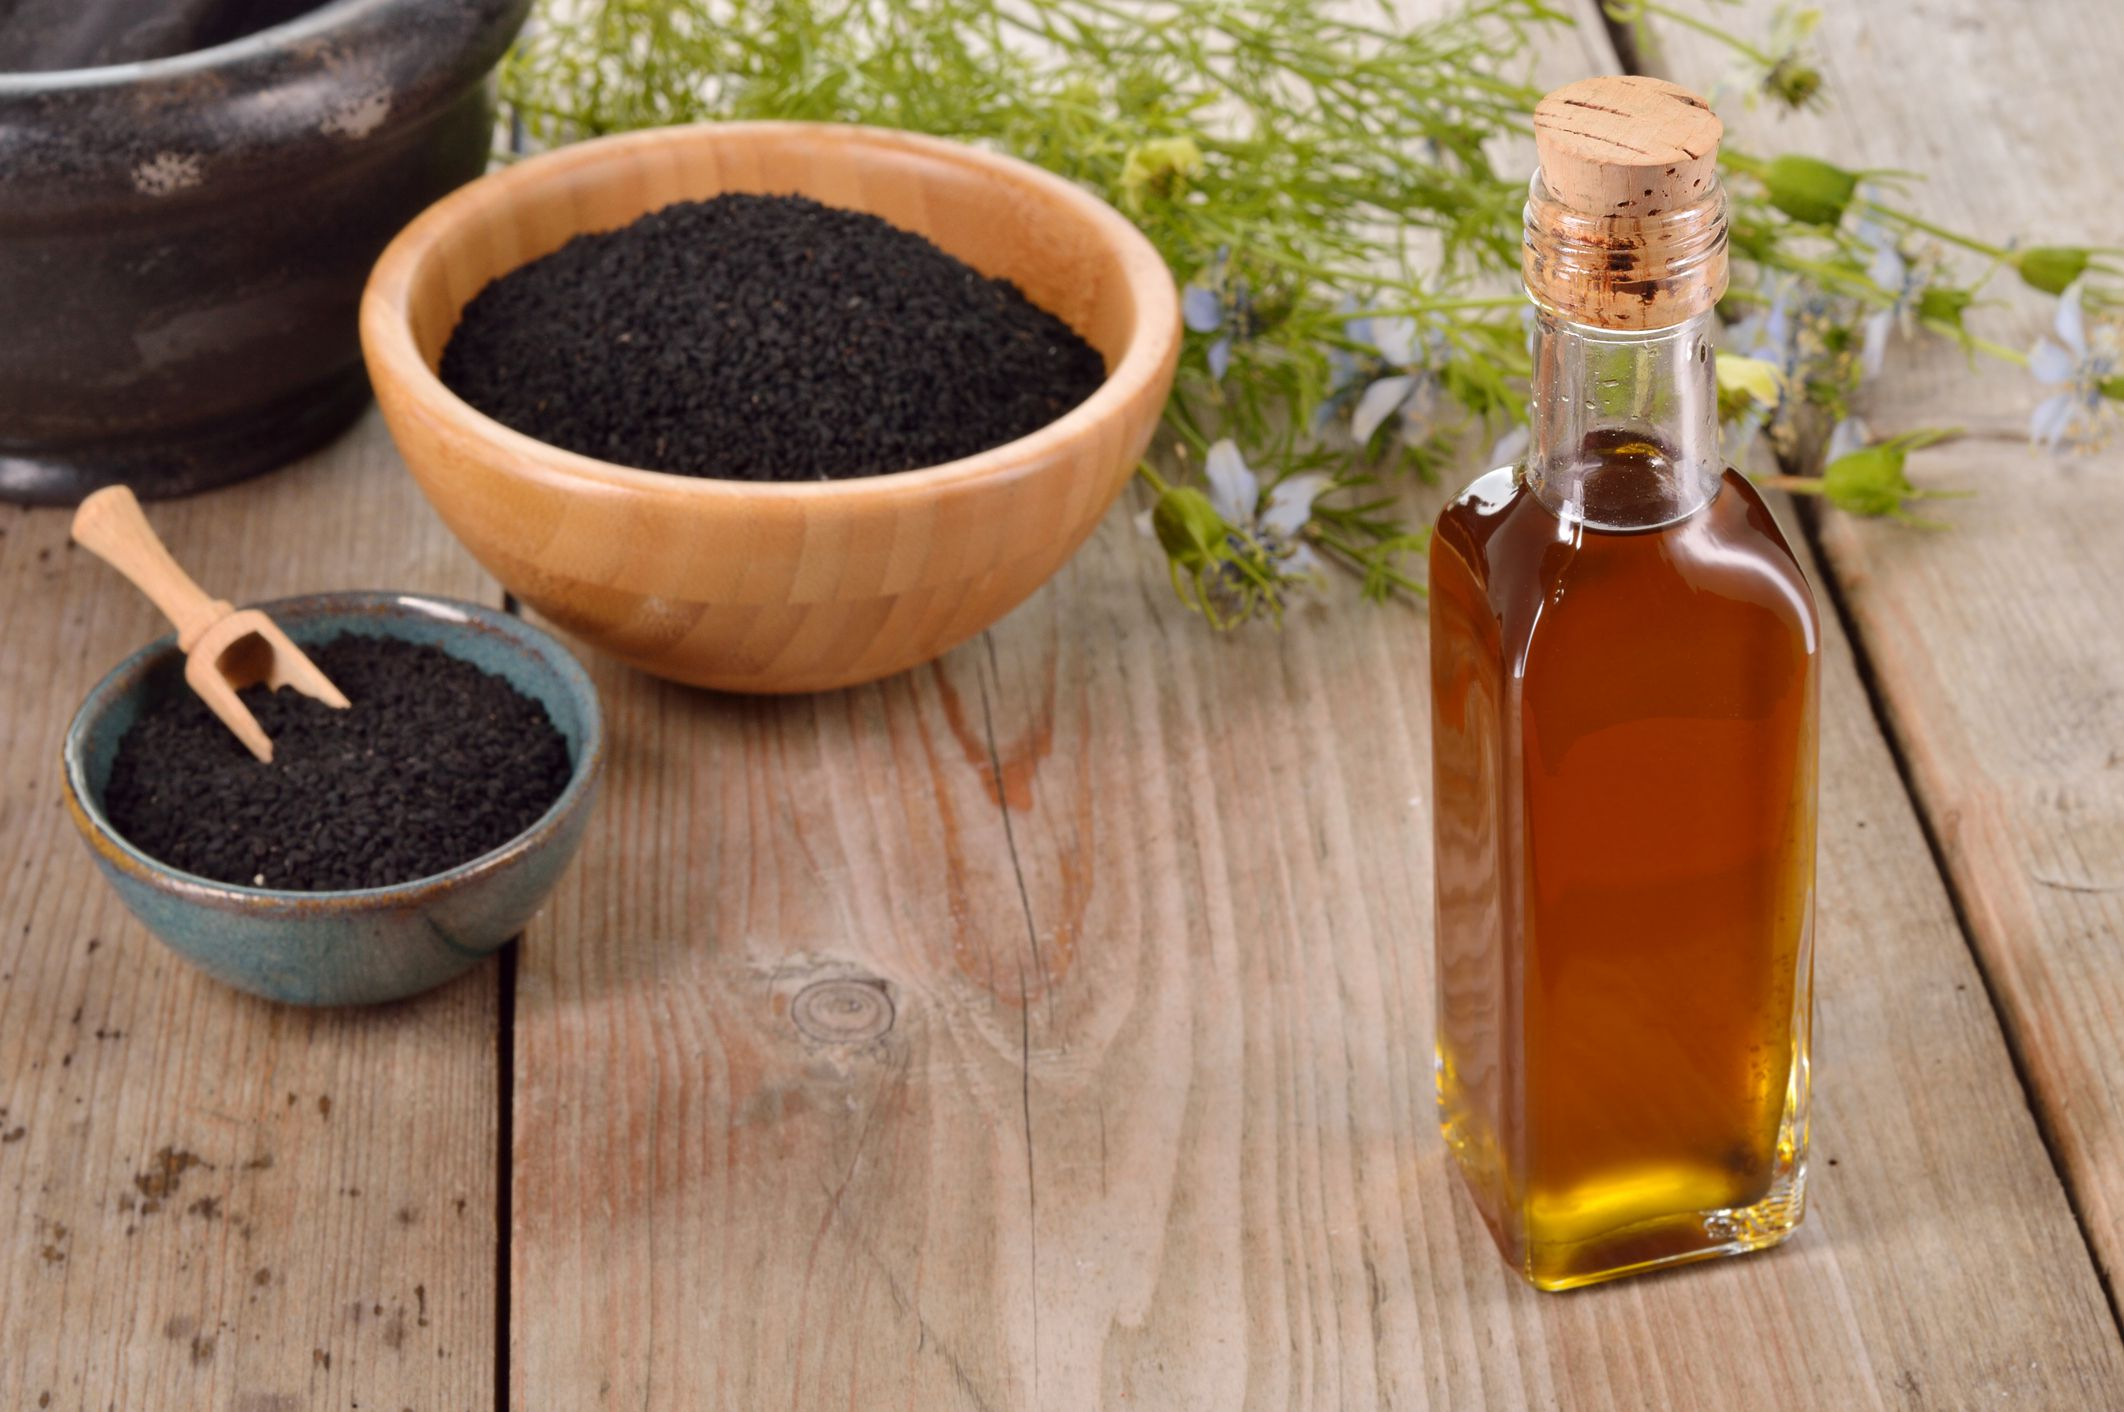 Black Seed Oil: Benefits, Side Effects, Dosage, and Interactions